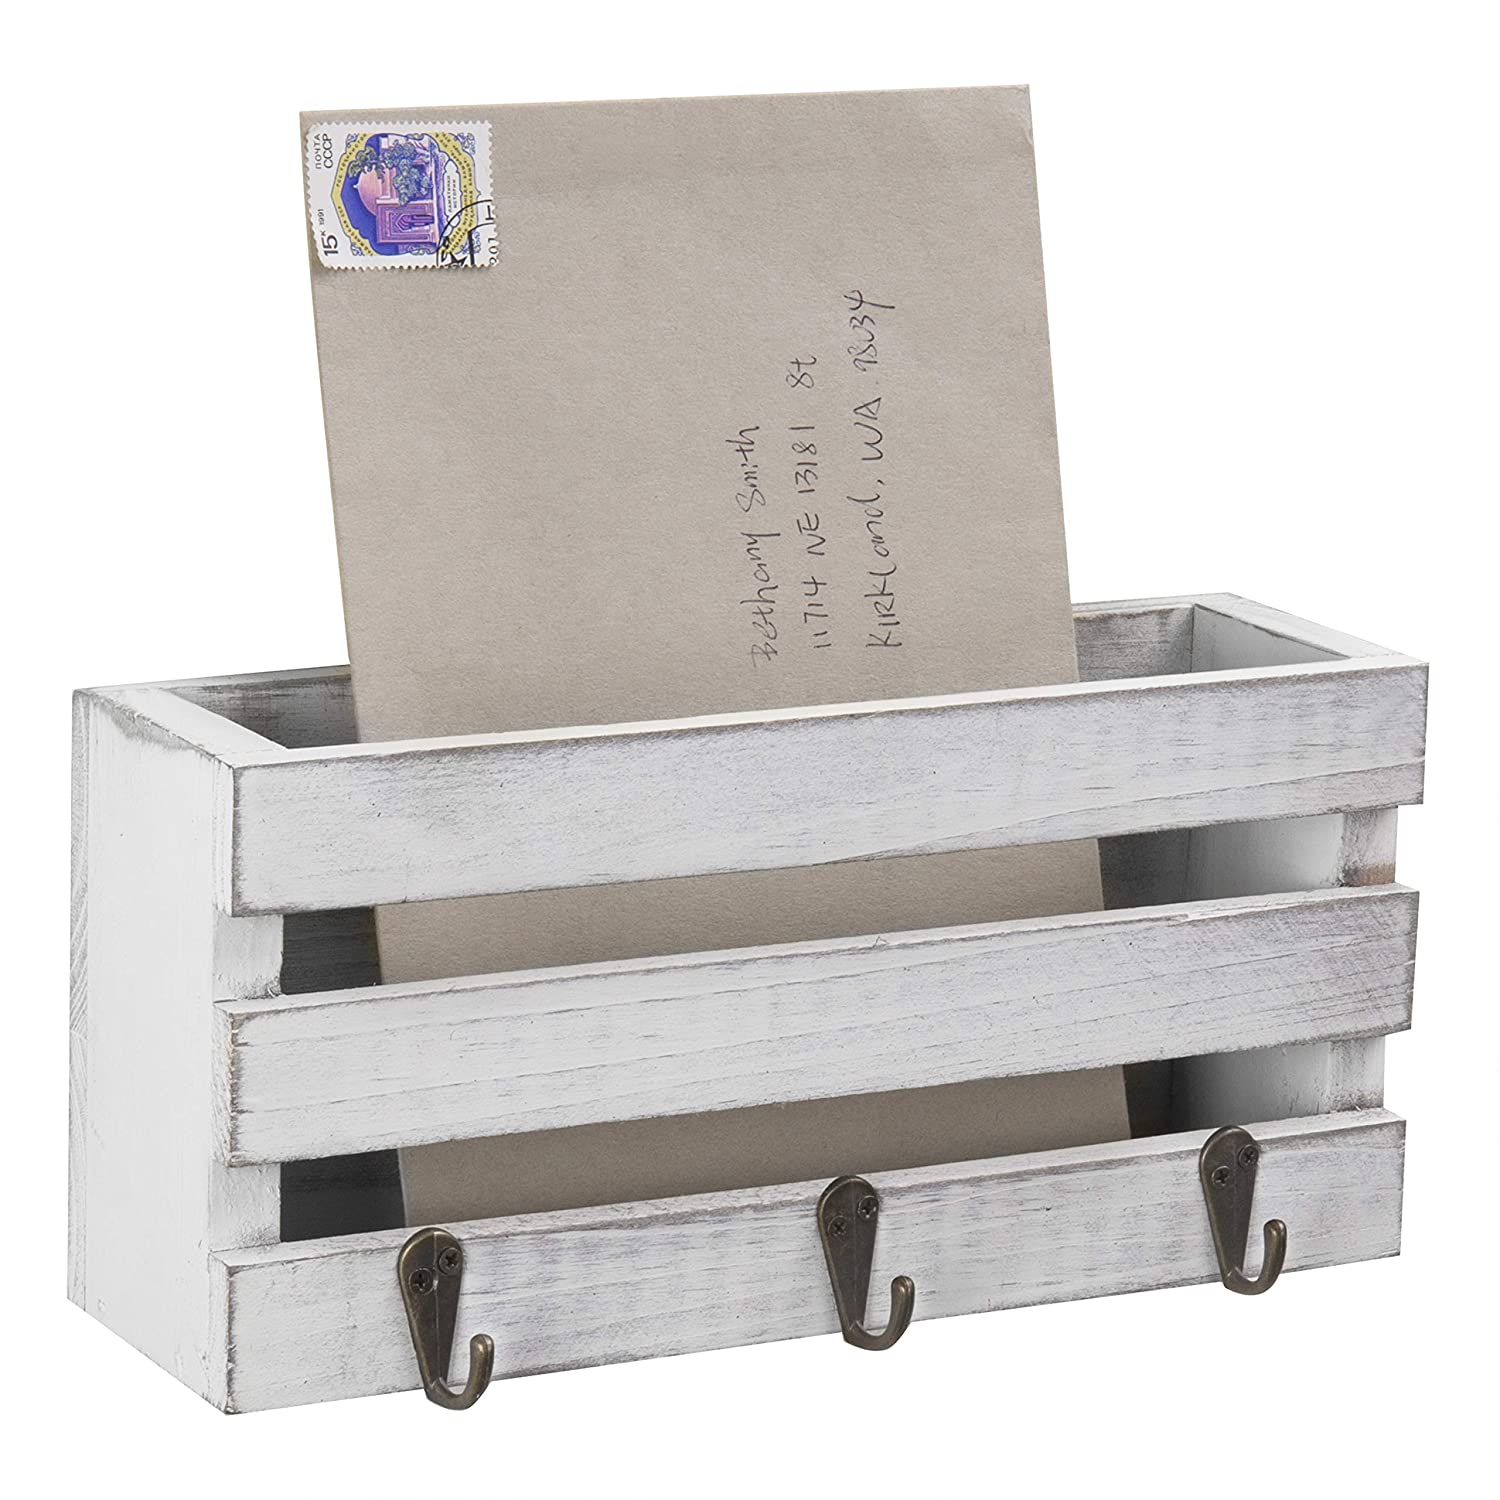 MyGift Vintage White Crate-Style Wall-Mounted Mail Sorter with 3 Key Hooks